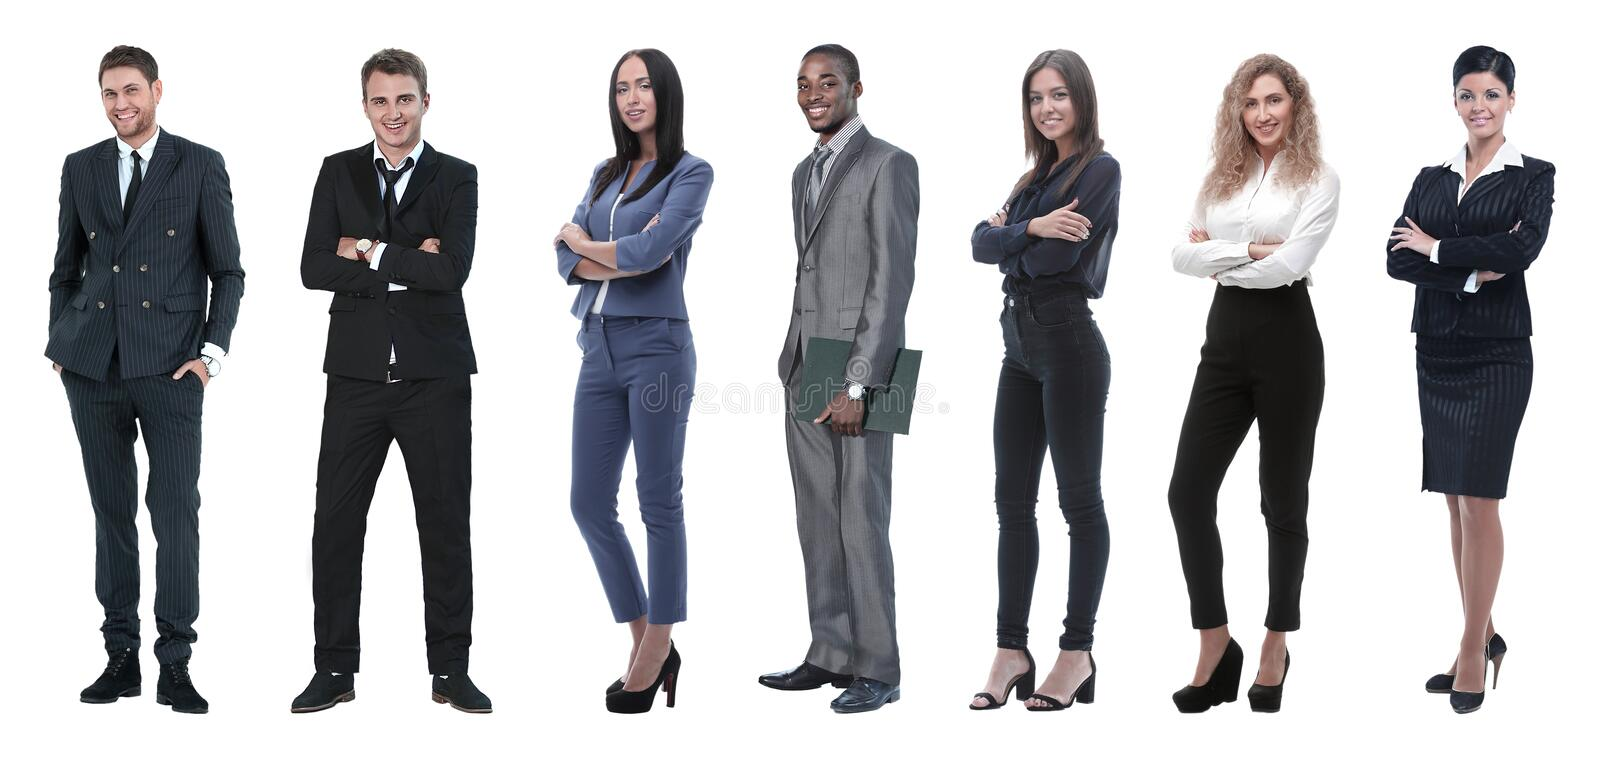 Collage of mixed age group of focused business professionals. Group of smiling business people. Businessman and women team royalty free stock photo